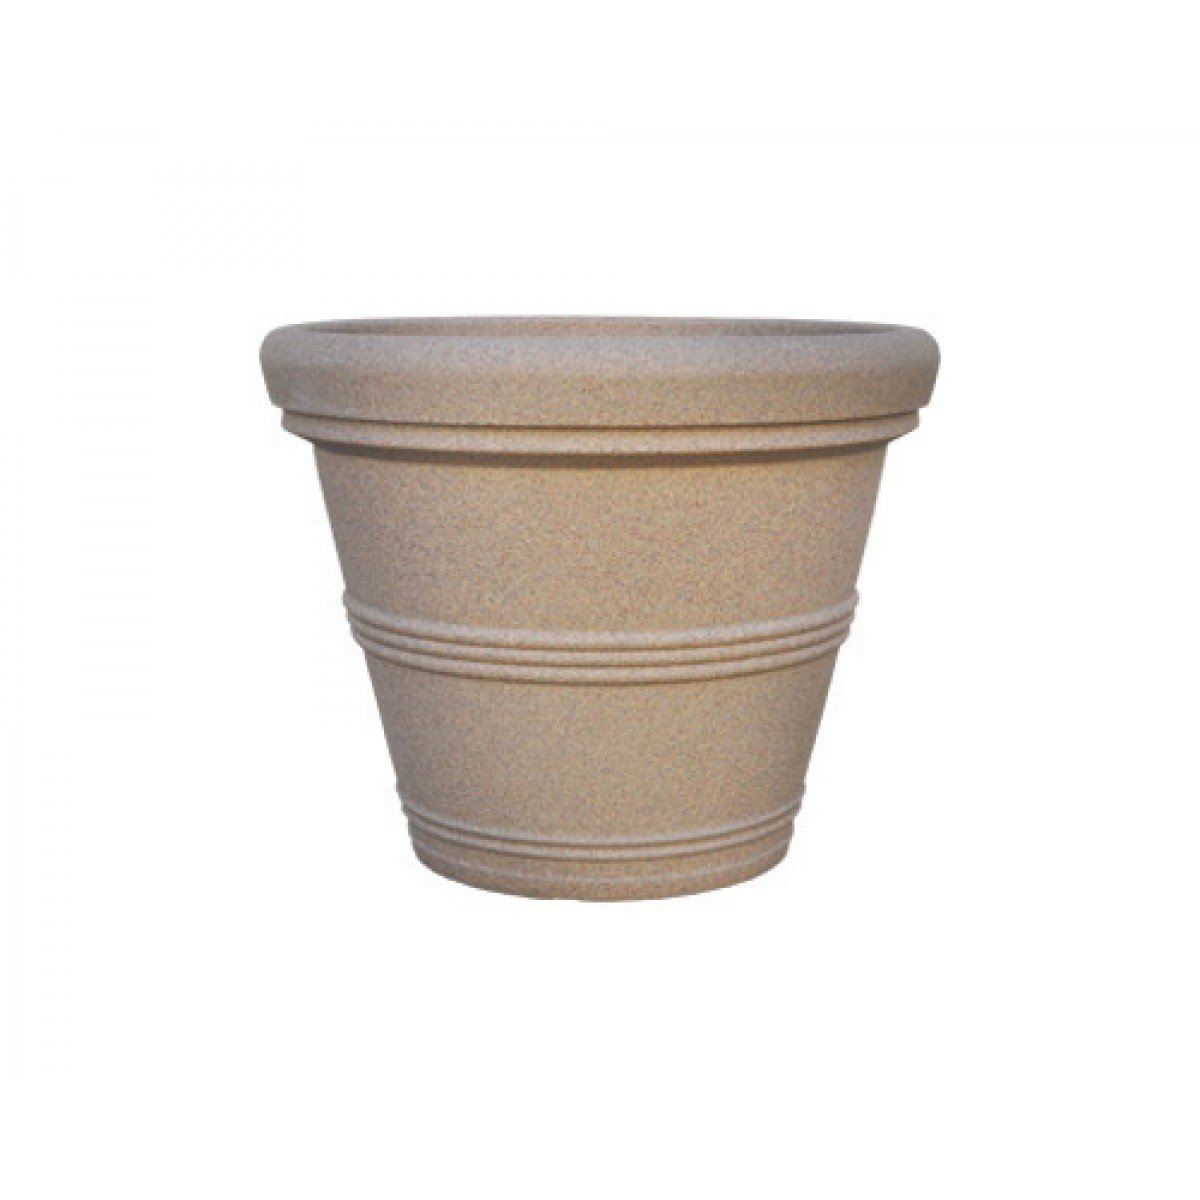 American Essence EP-AESPO-SAN-36 35.5 x 29 in. Spokane Cylinder Planter44; Sandstone by American Essence